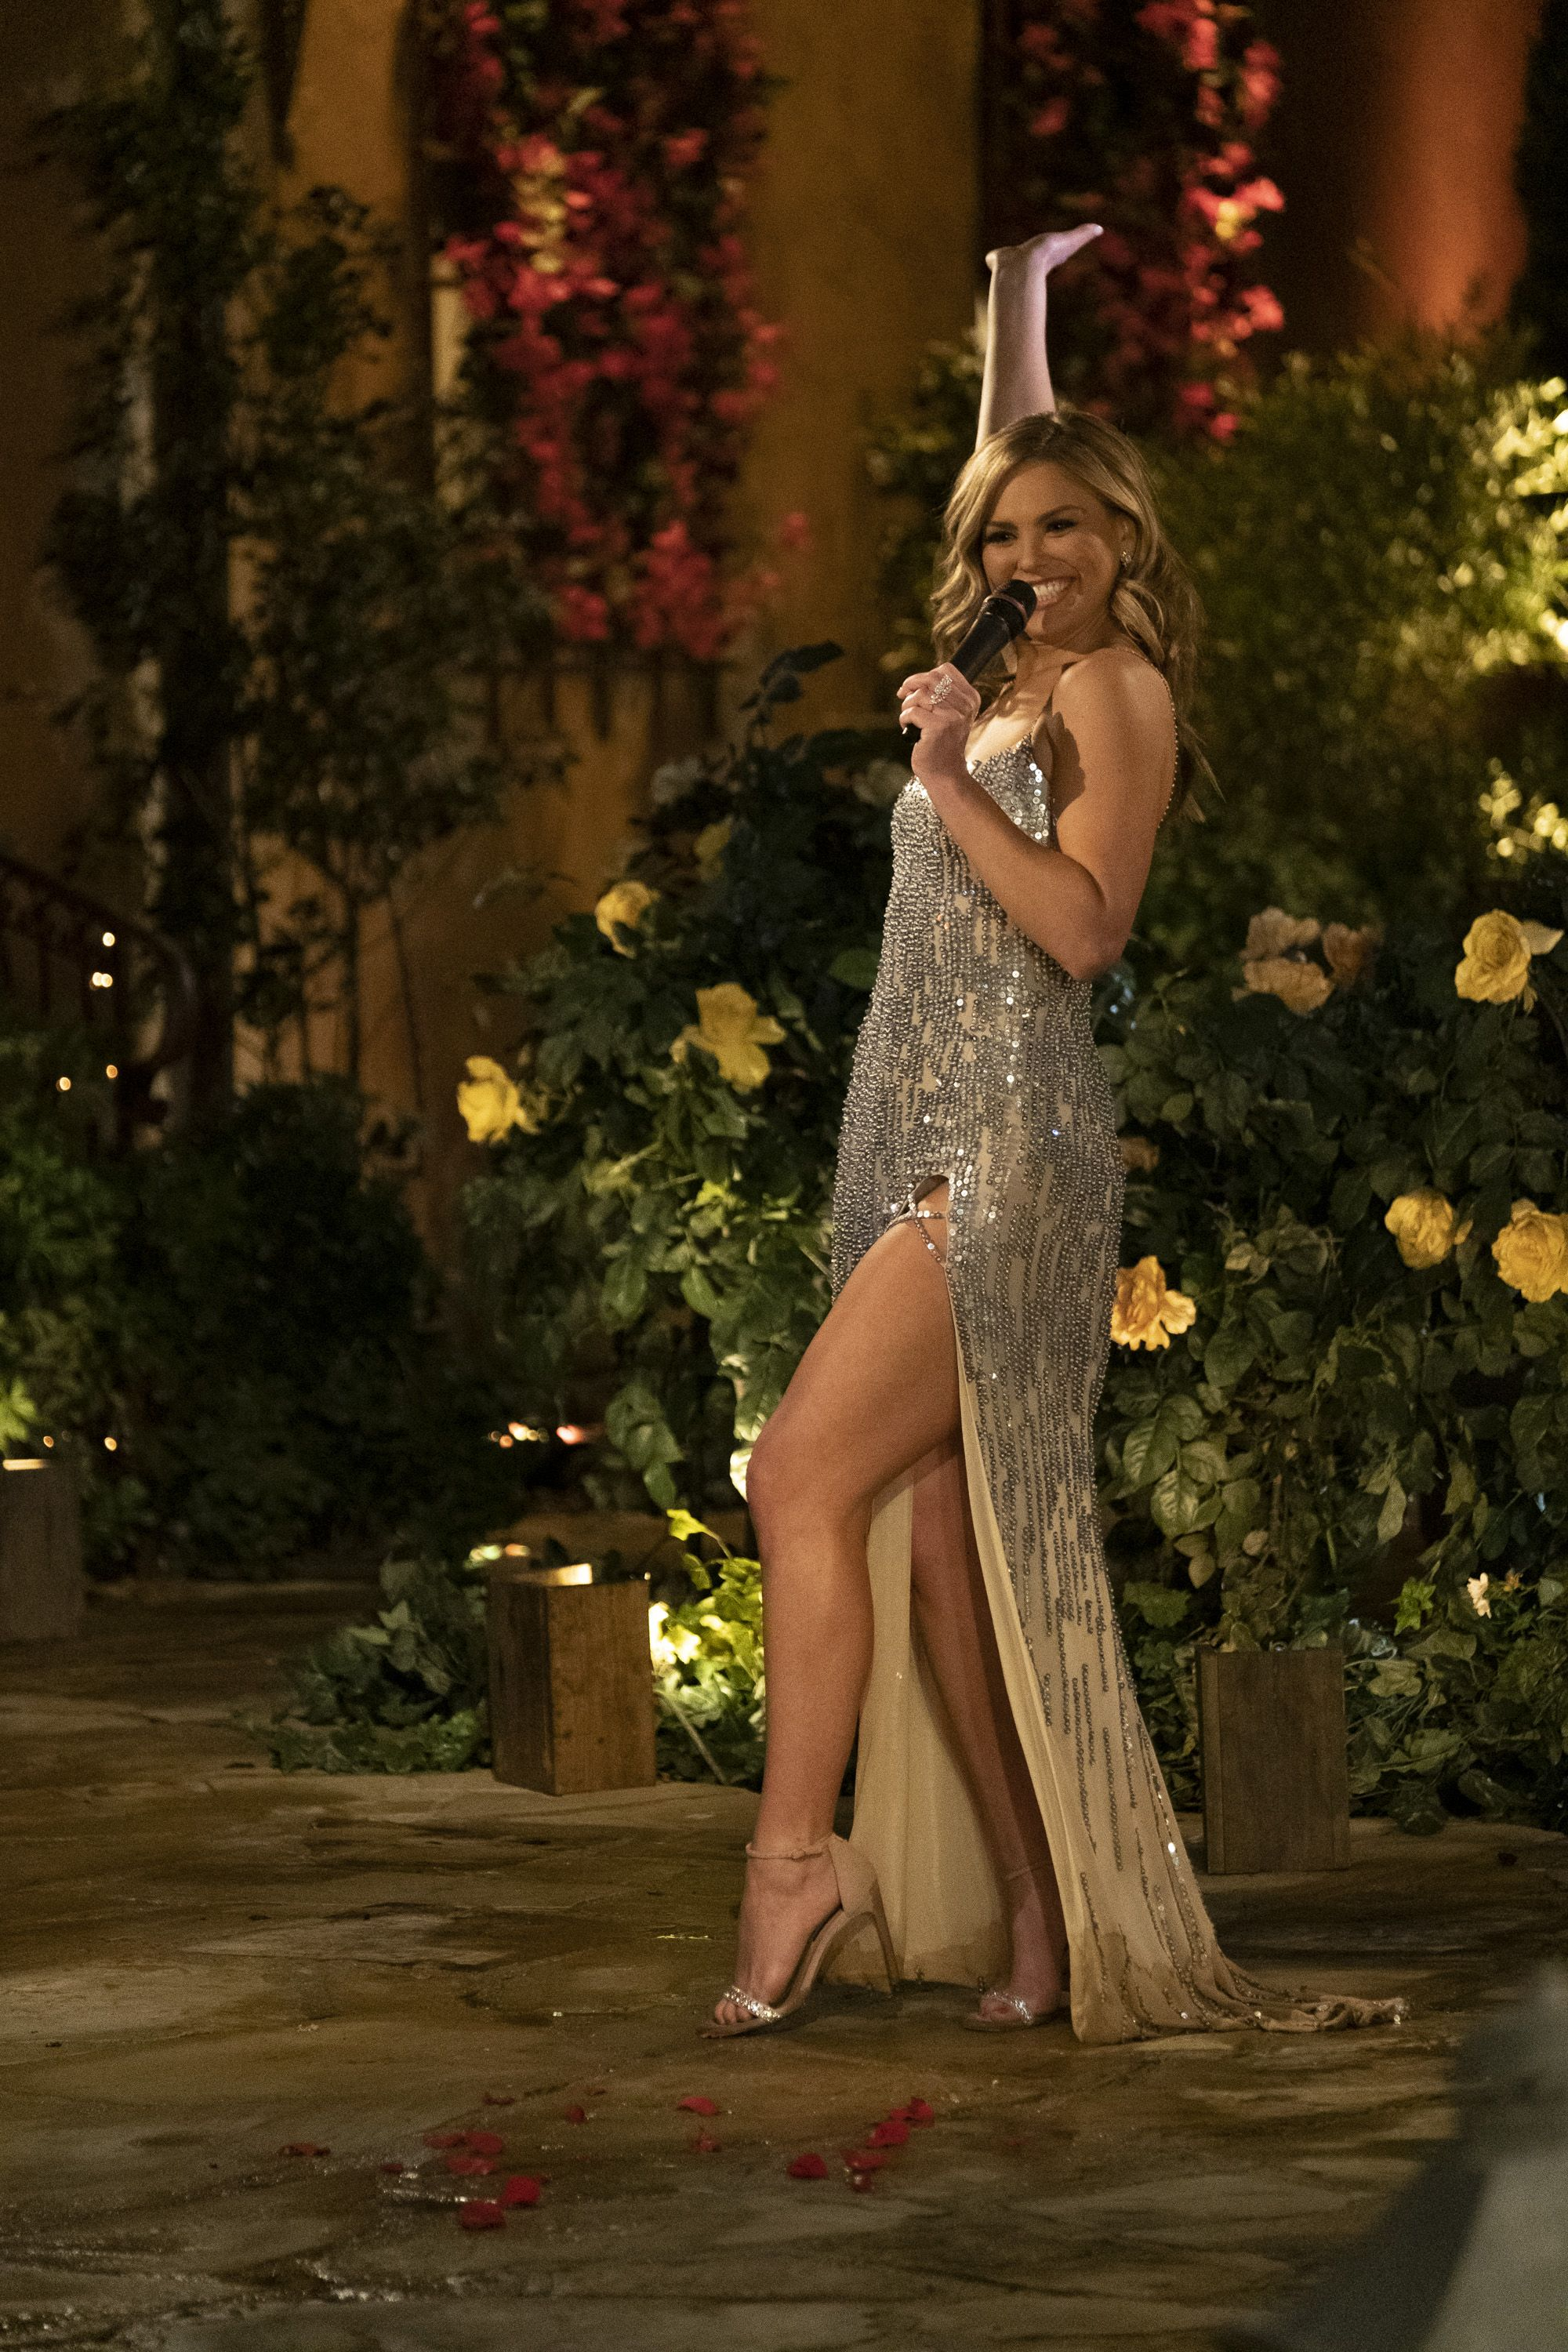 How to Watch 'The Bachelorette' Even if You Don't Have Cable